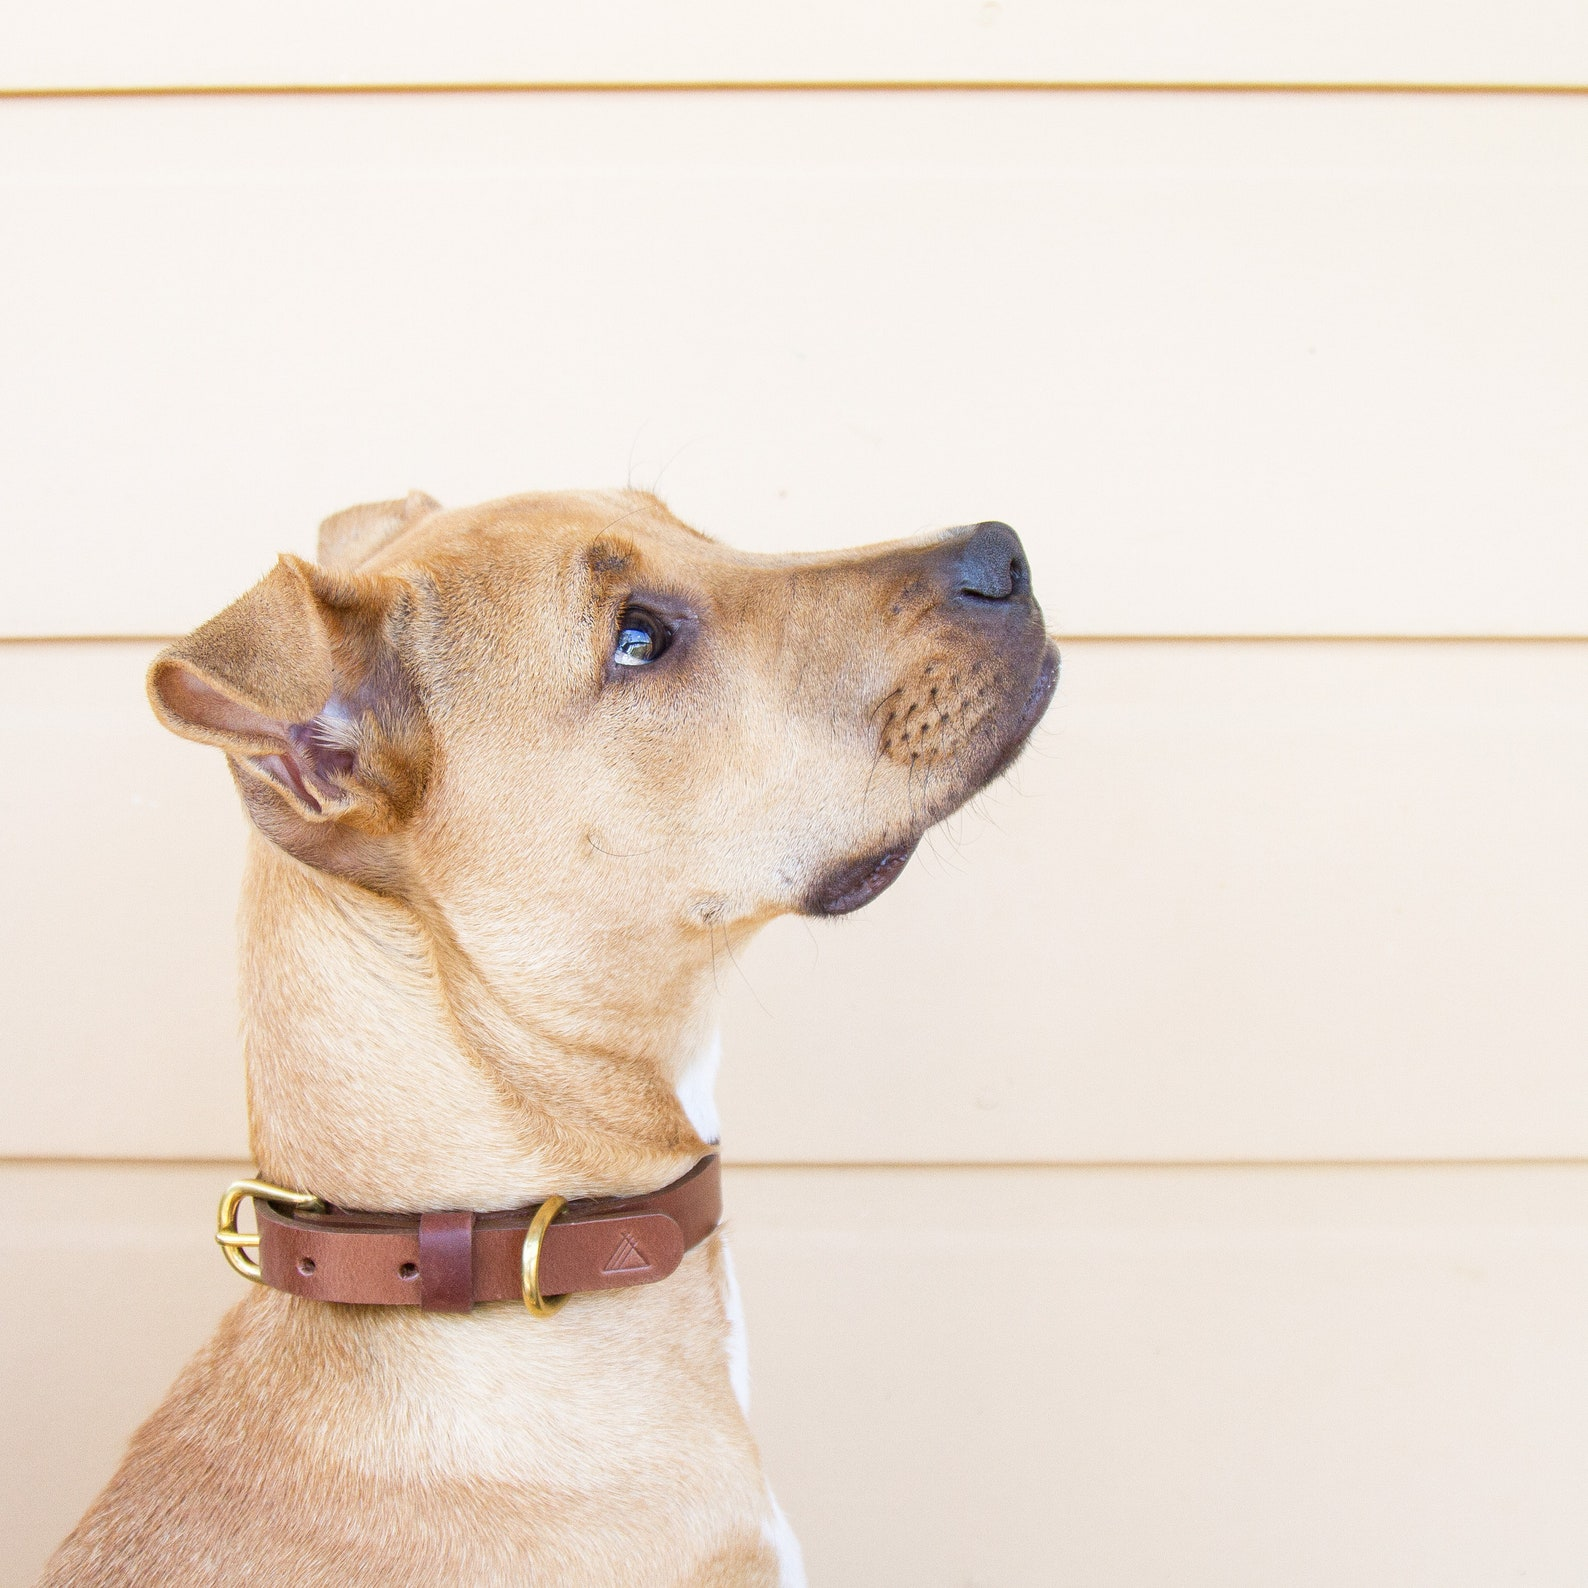 Dog posing with brown leather dog collar